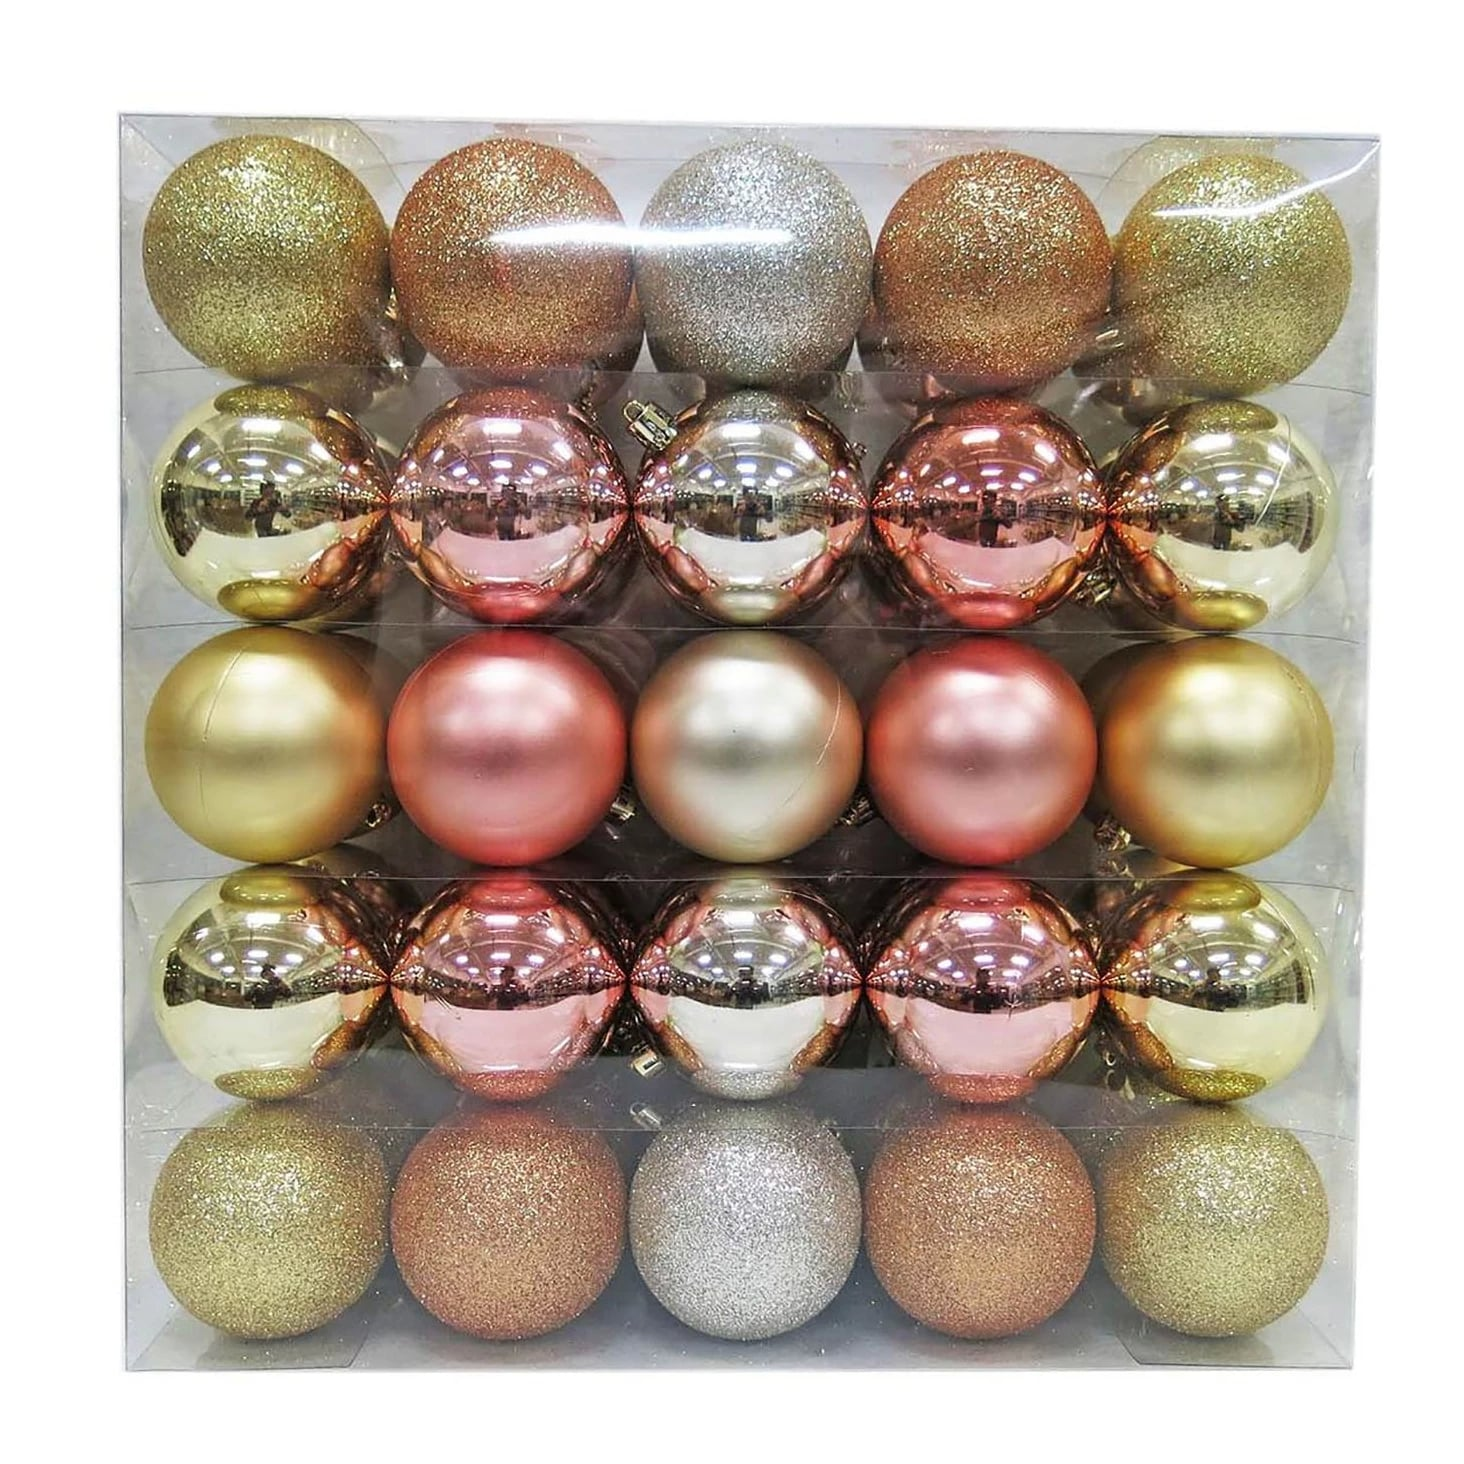 50ct Ornament Set 70mm Rosegold Champagne 37 Holiday Ornaments You Should Get Online Because Why Leave The House Popsugar Family Photo 11